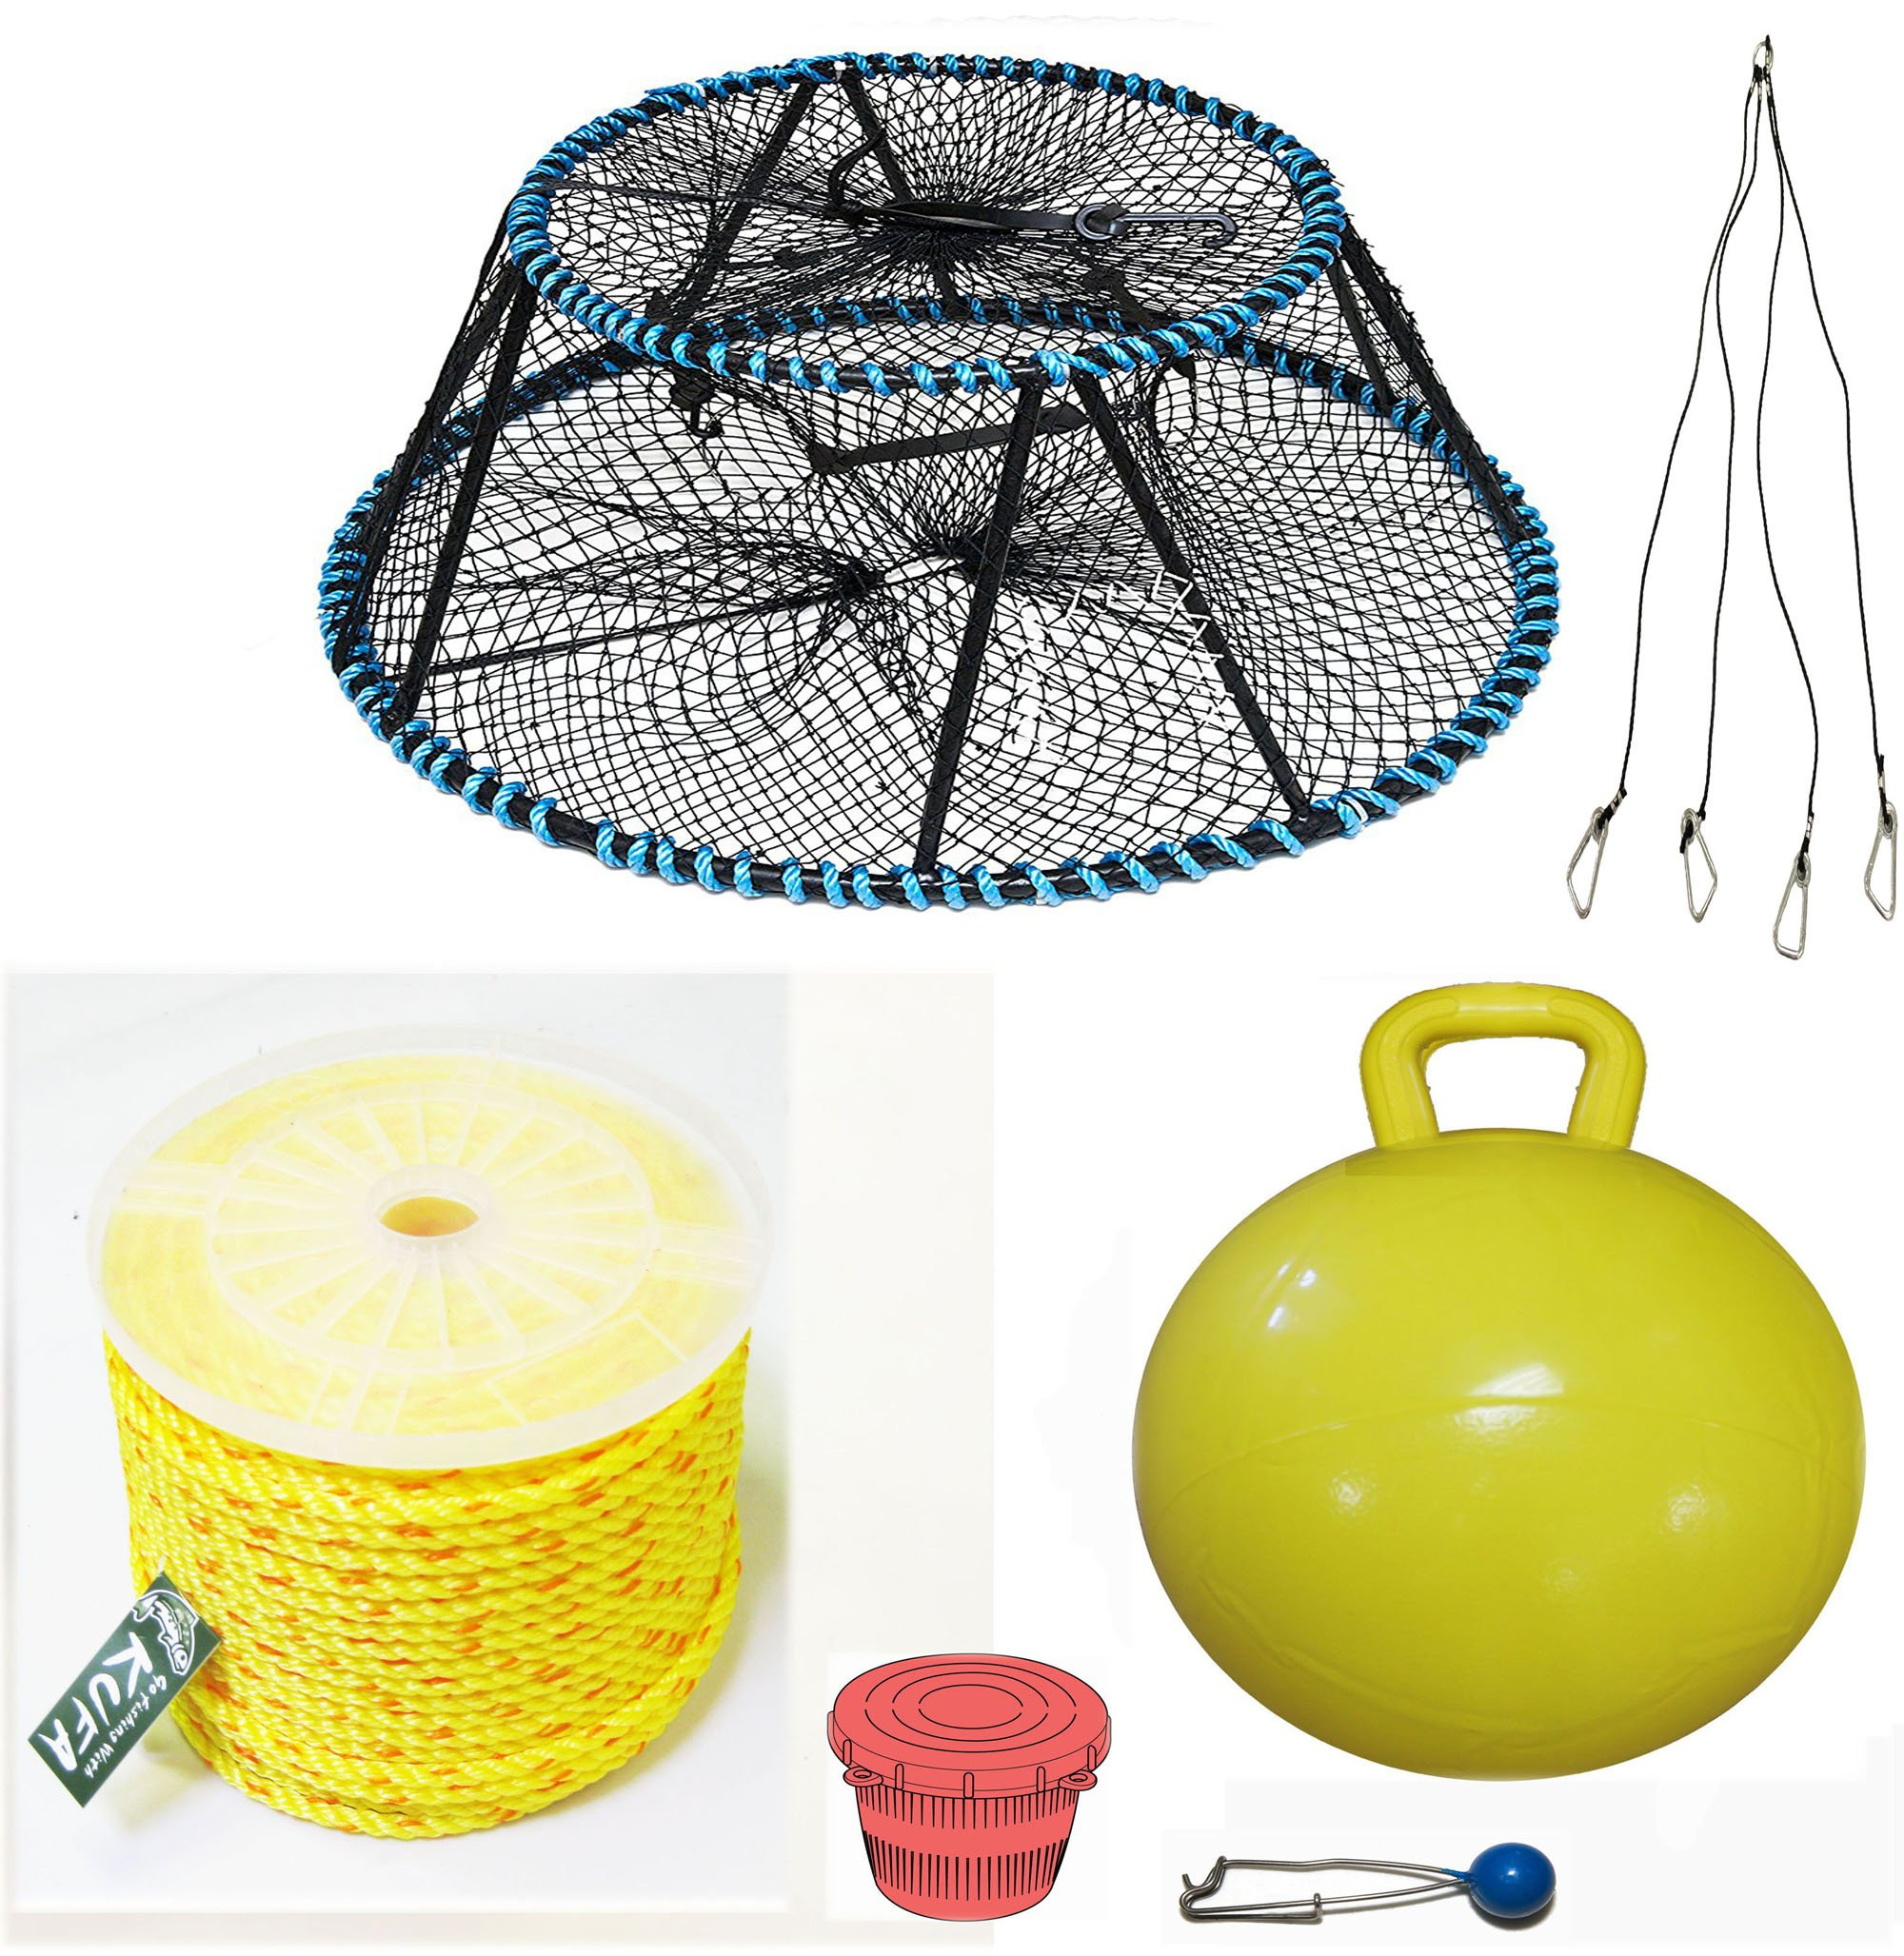 KUFA Sports Tower Style Prawn trap with 400' rope, Yellow float, Vented Bait Jar & Harness combo (CT130+PAS5+HA5)